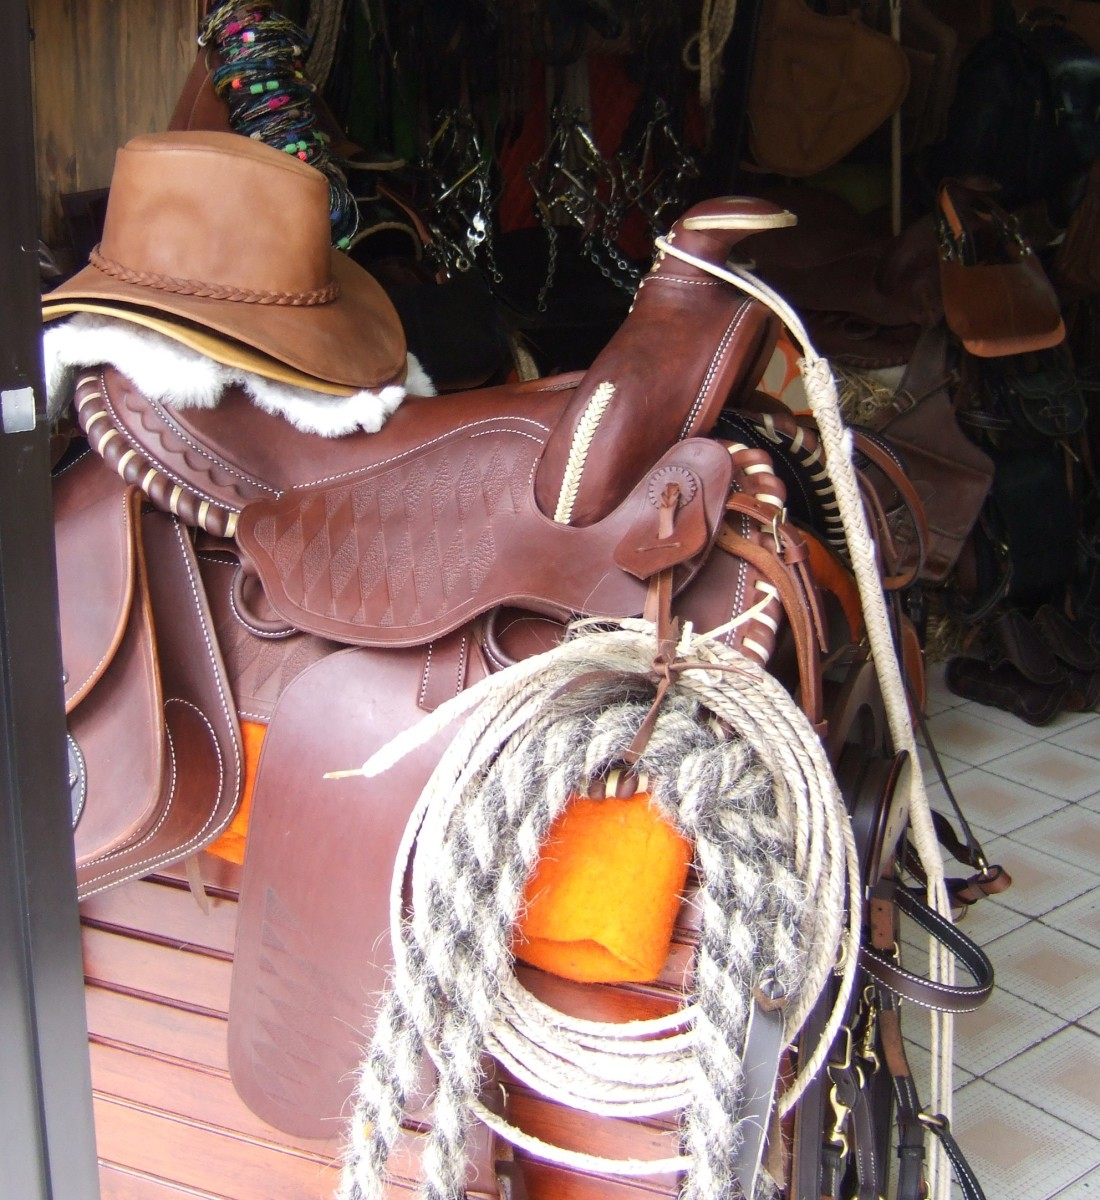 Beautiful handmade saddles in a Cotacachi shop, along with hats, horsehair lassos, and other equestrian items.